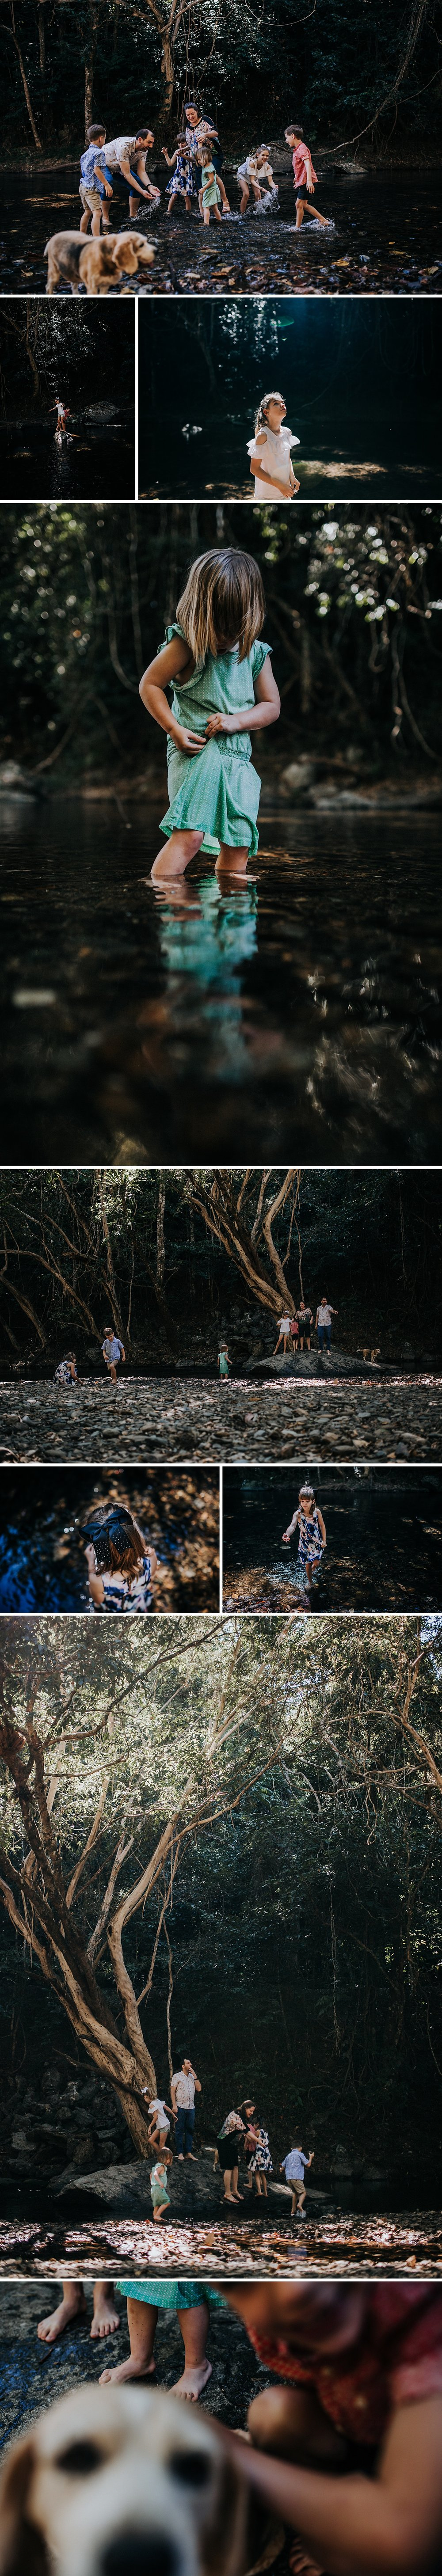 Cairns Family adventure lifestyle photographer creek crystal cascades kids playing